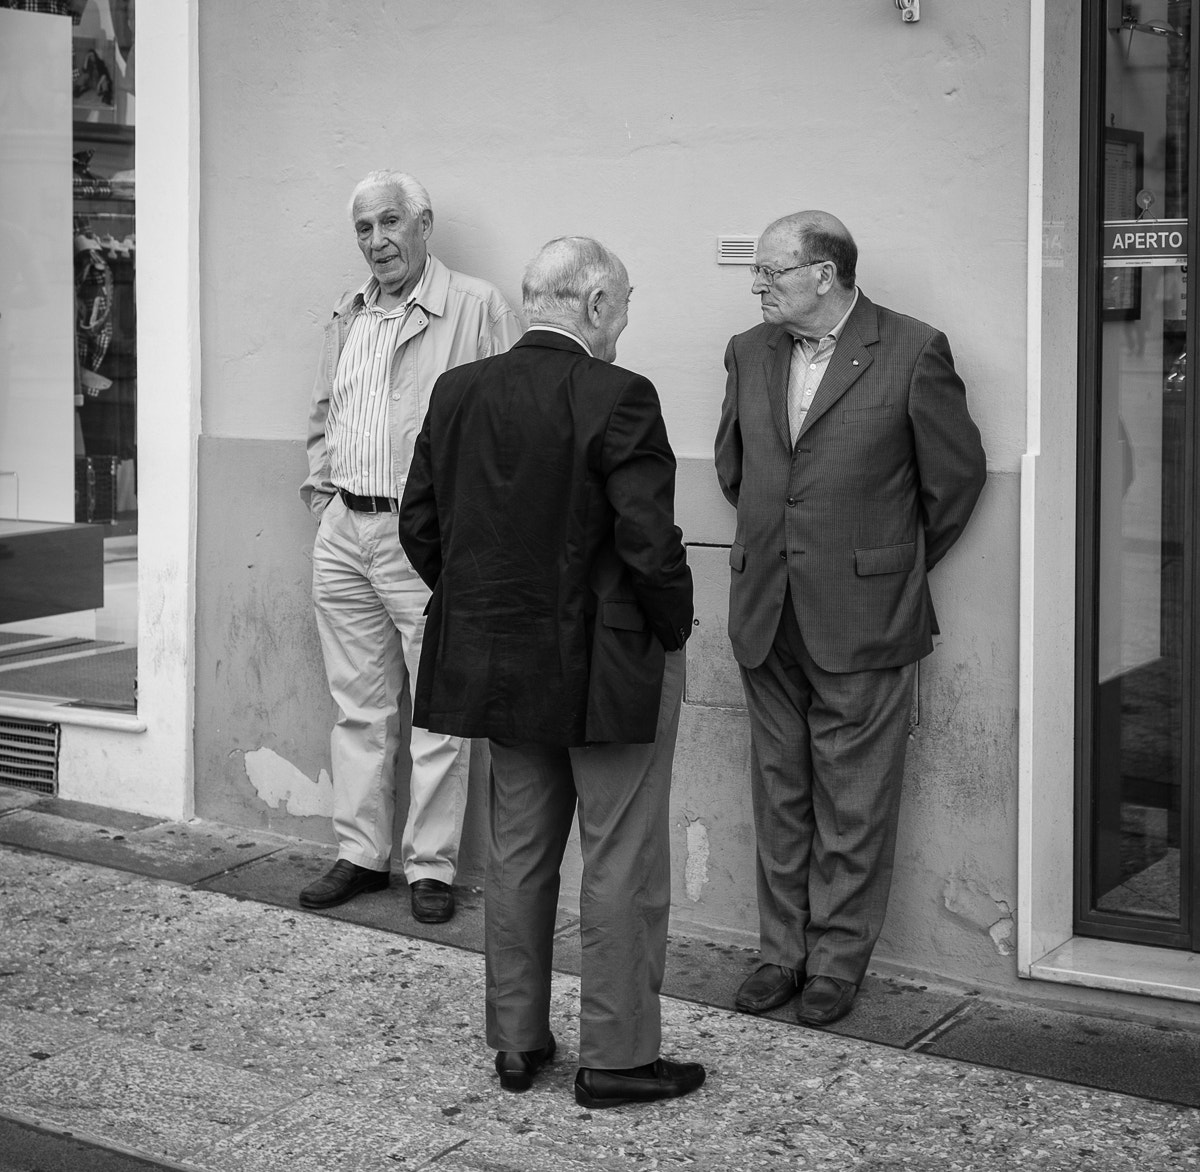 Photograph Three men in a street by Michael Avory on 500px